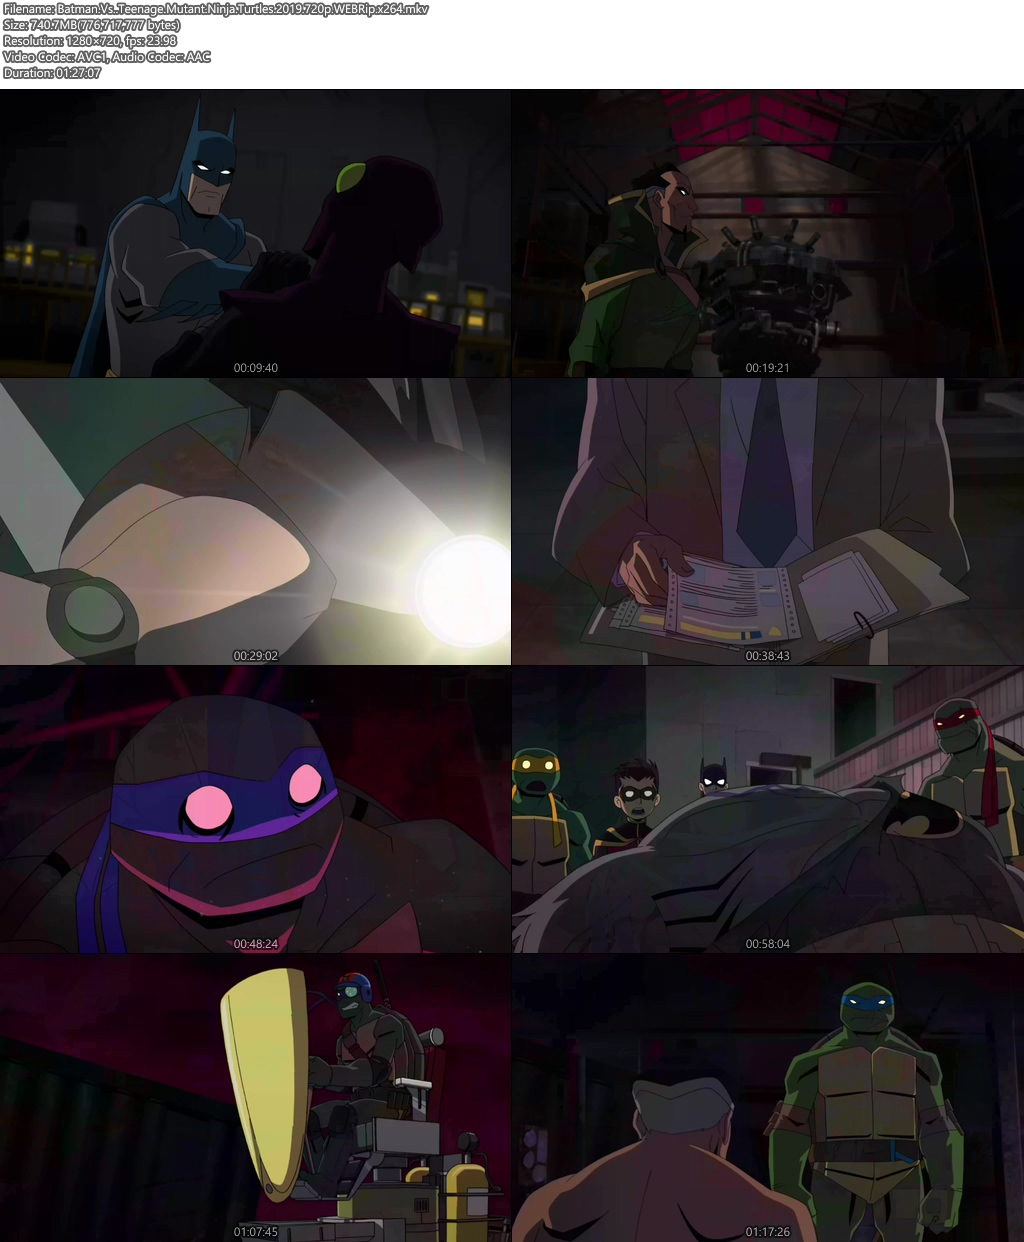 Batman Vs Teenage Mutant Ninja Turtles 2019 720p WEBRip x264 | 480p 300MB | 100MB HEVC Screenshot